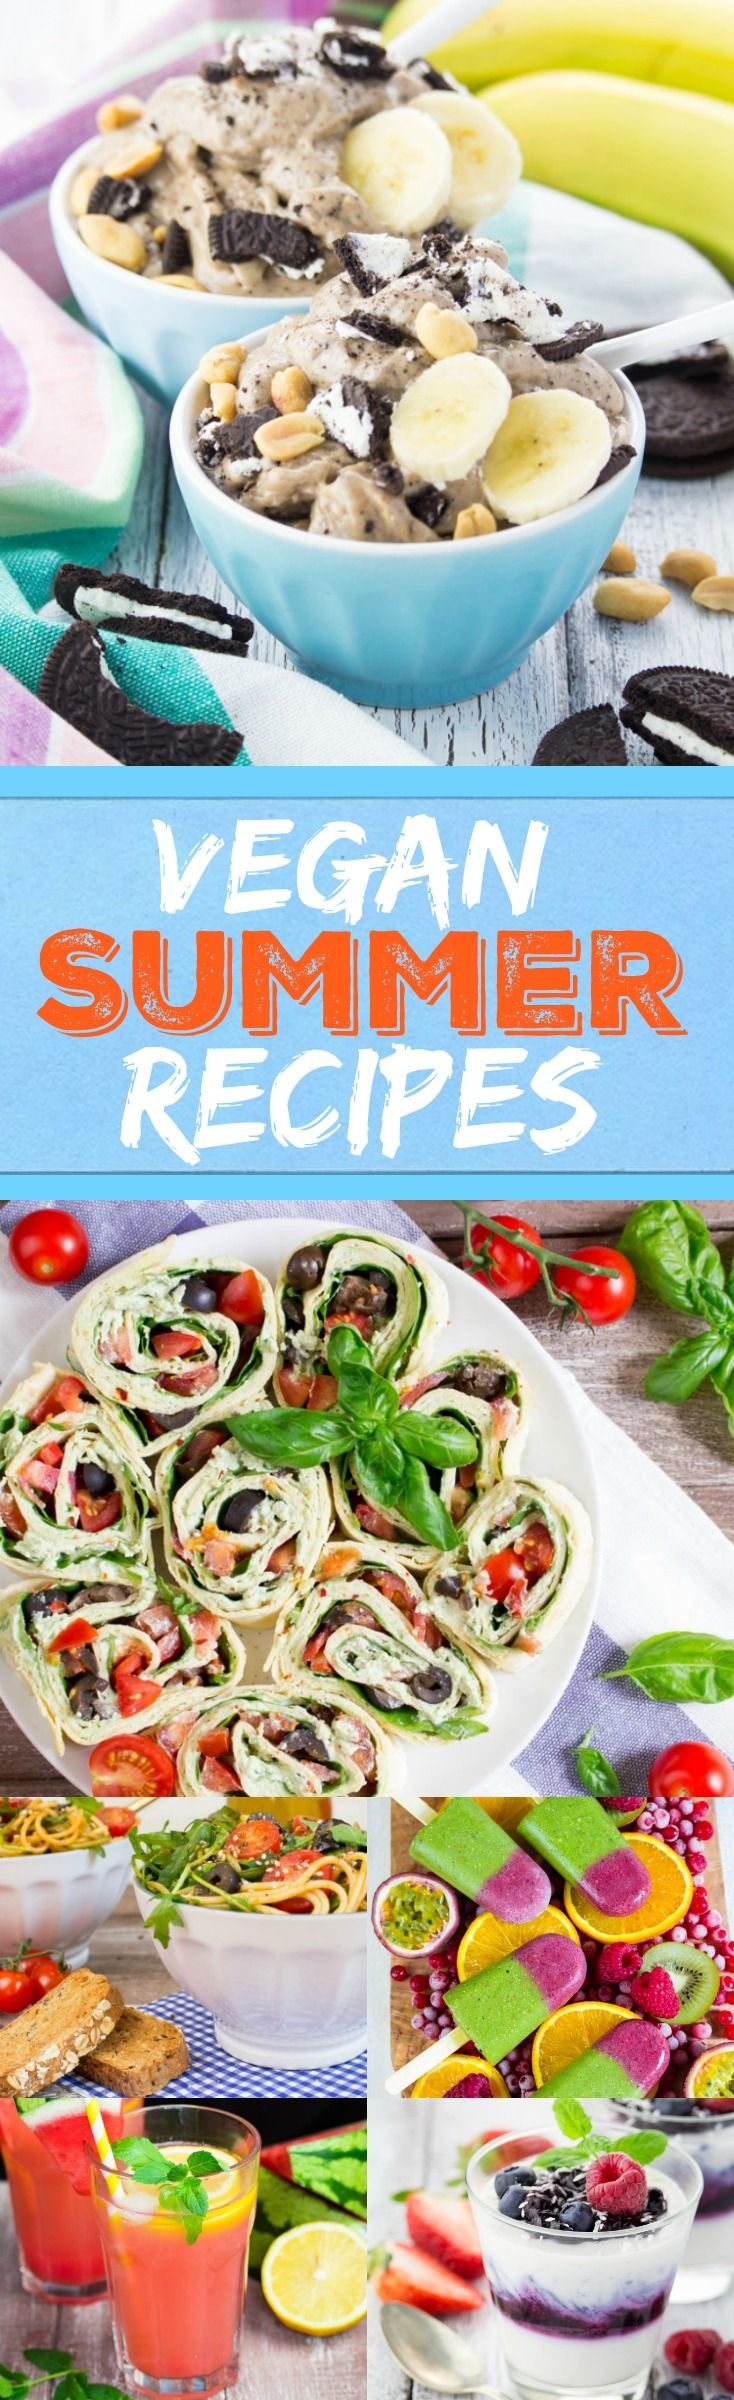 Summer is finally here and to celebrate it I put together this list of 10 delicious vegan summer recipes! All of these recipes are really easy to make, made with fresh and light ingredients, healthy, and of course meat- and dairy-free!